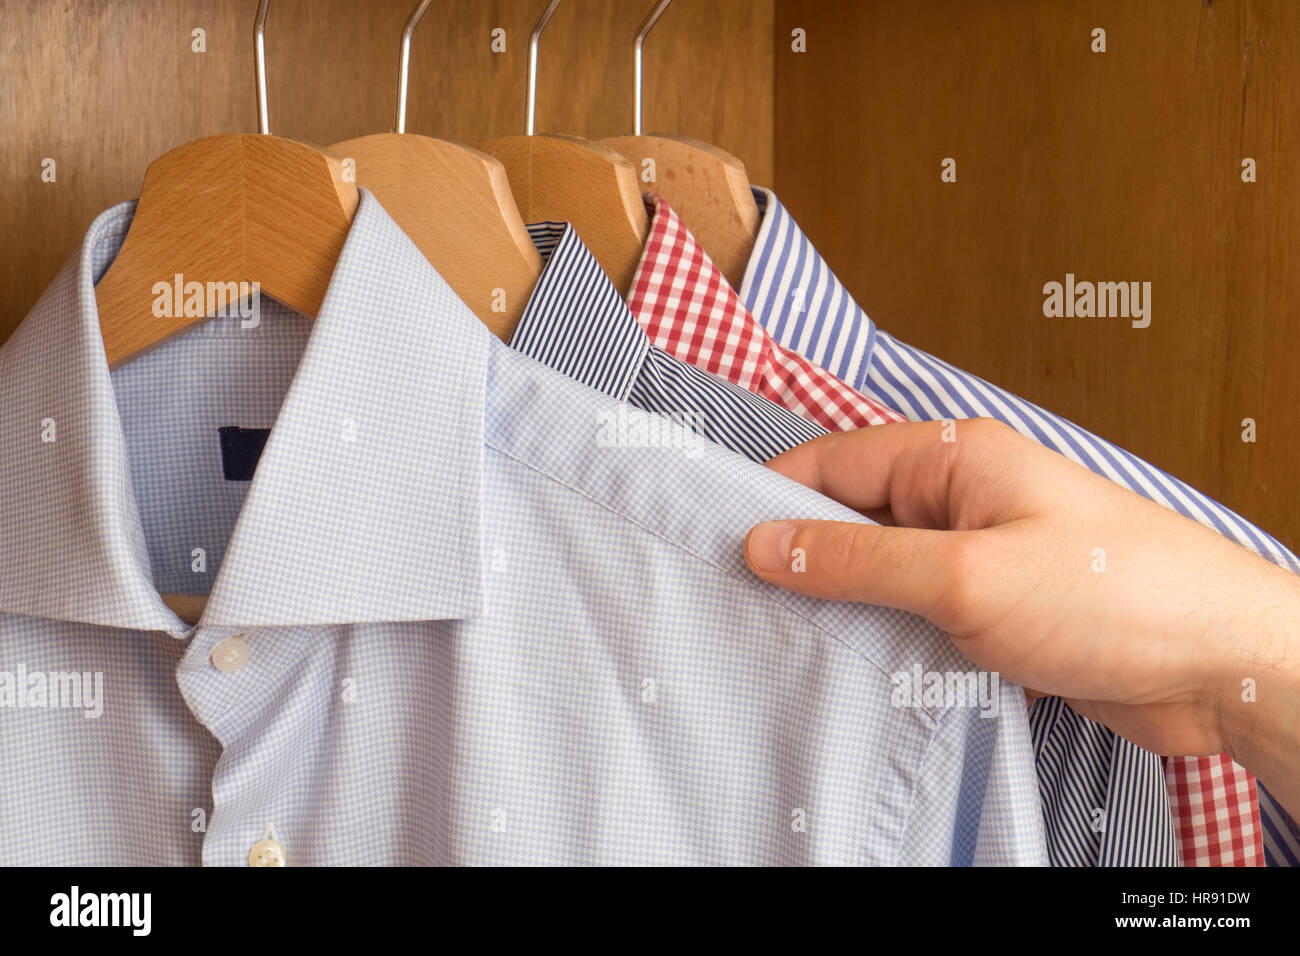 Shirts in several colors and textures - Stock Image